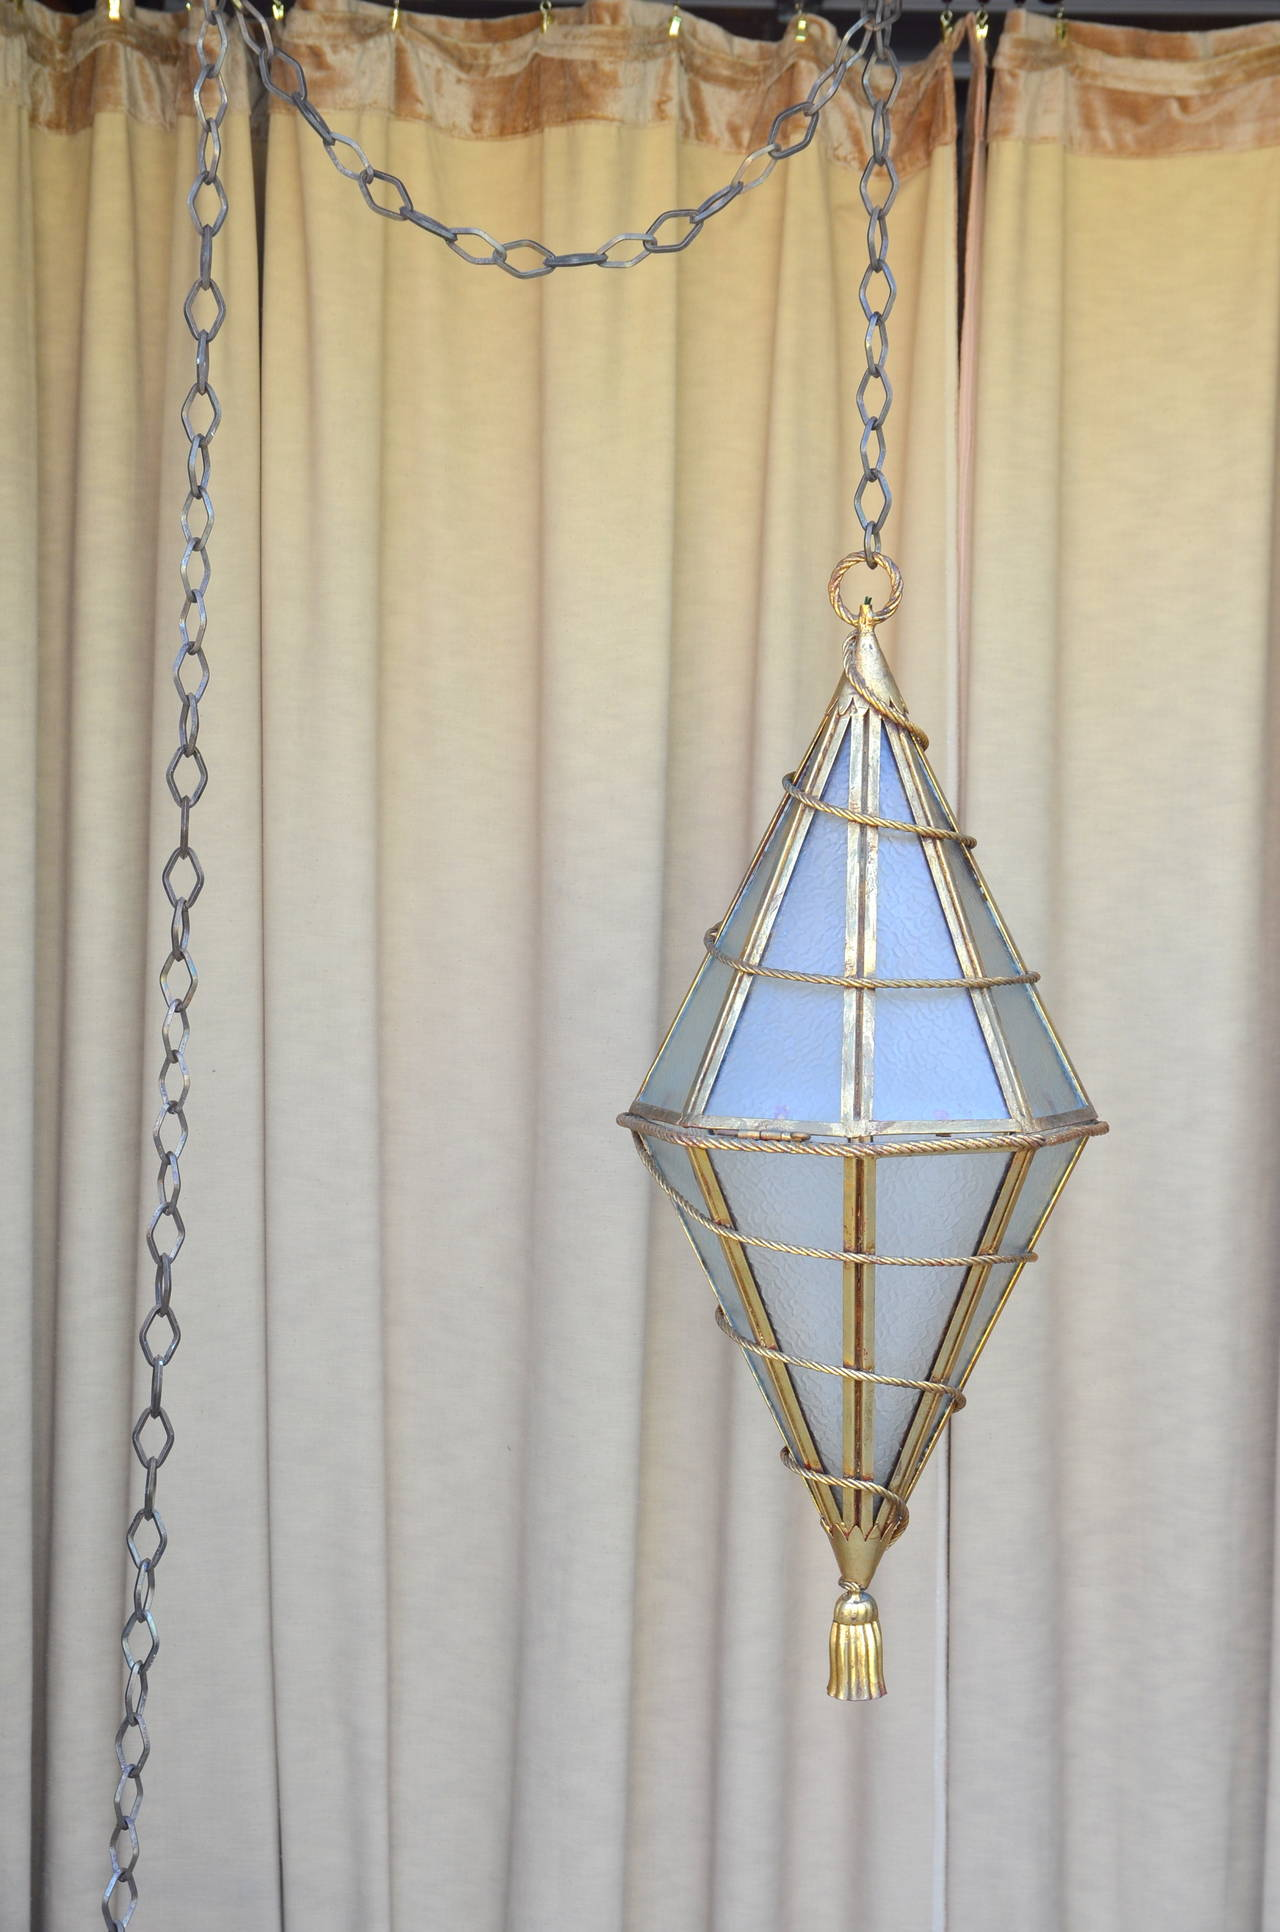 Spectacular Italian gilt metal geometric hanging lantern. Comes with extra-long (12 feet) custom chain.